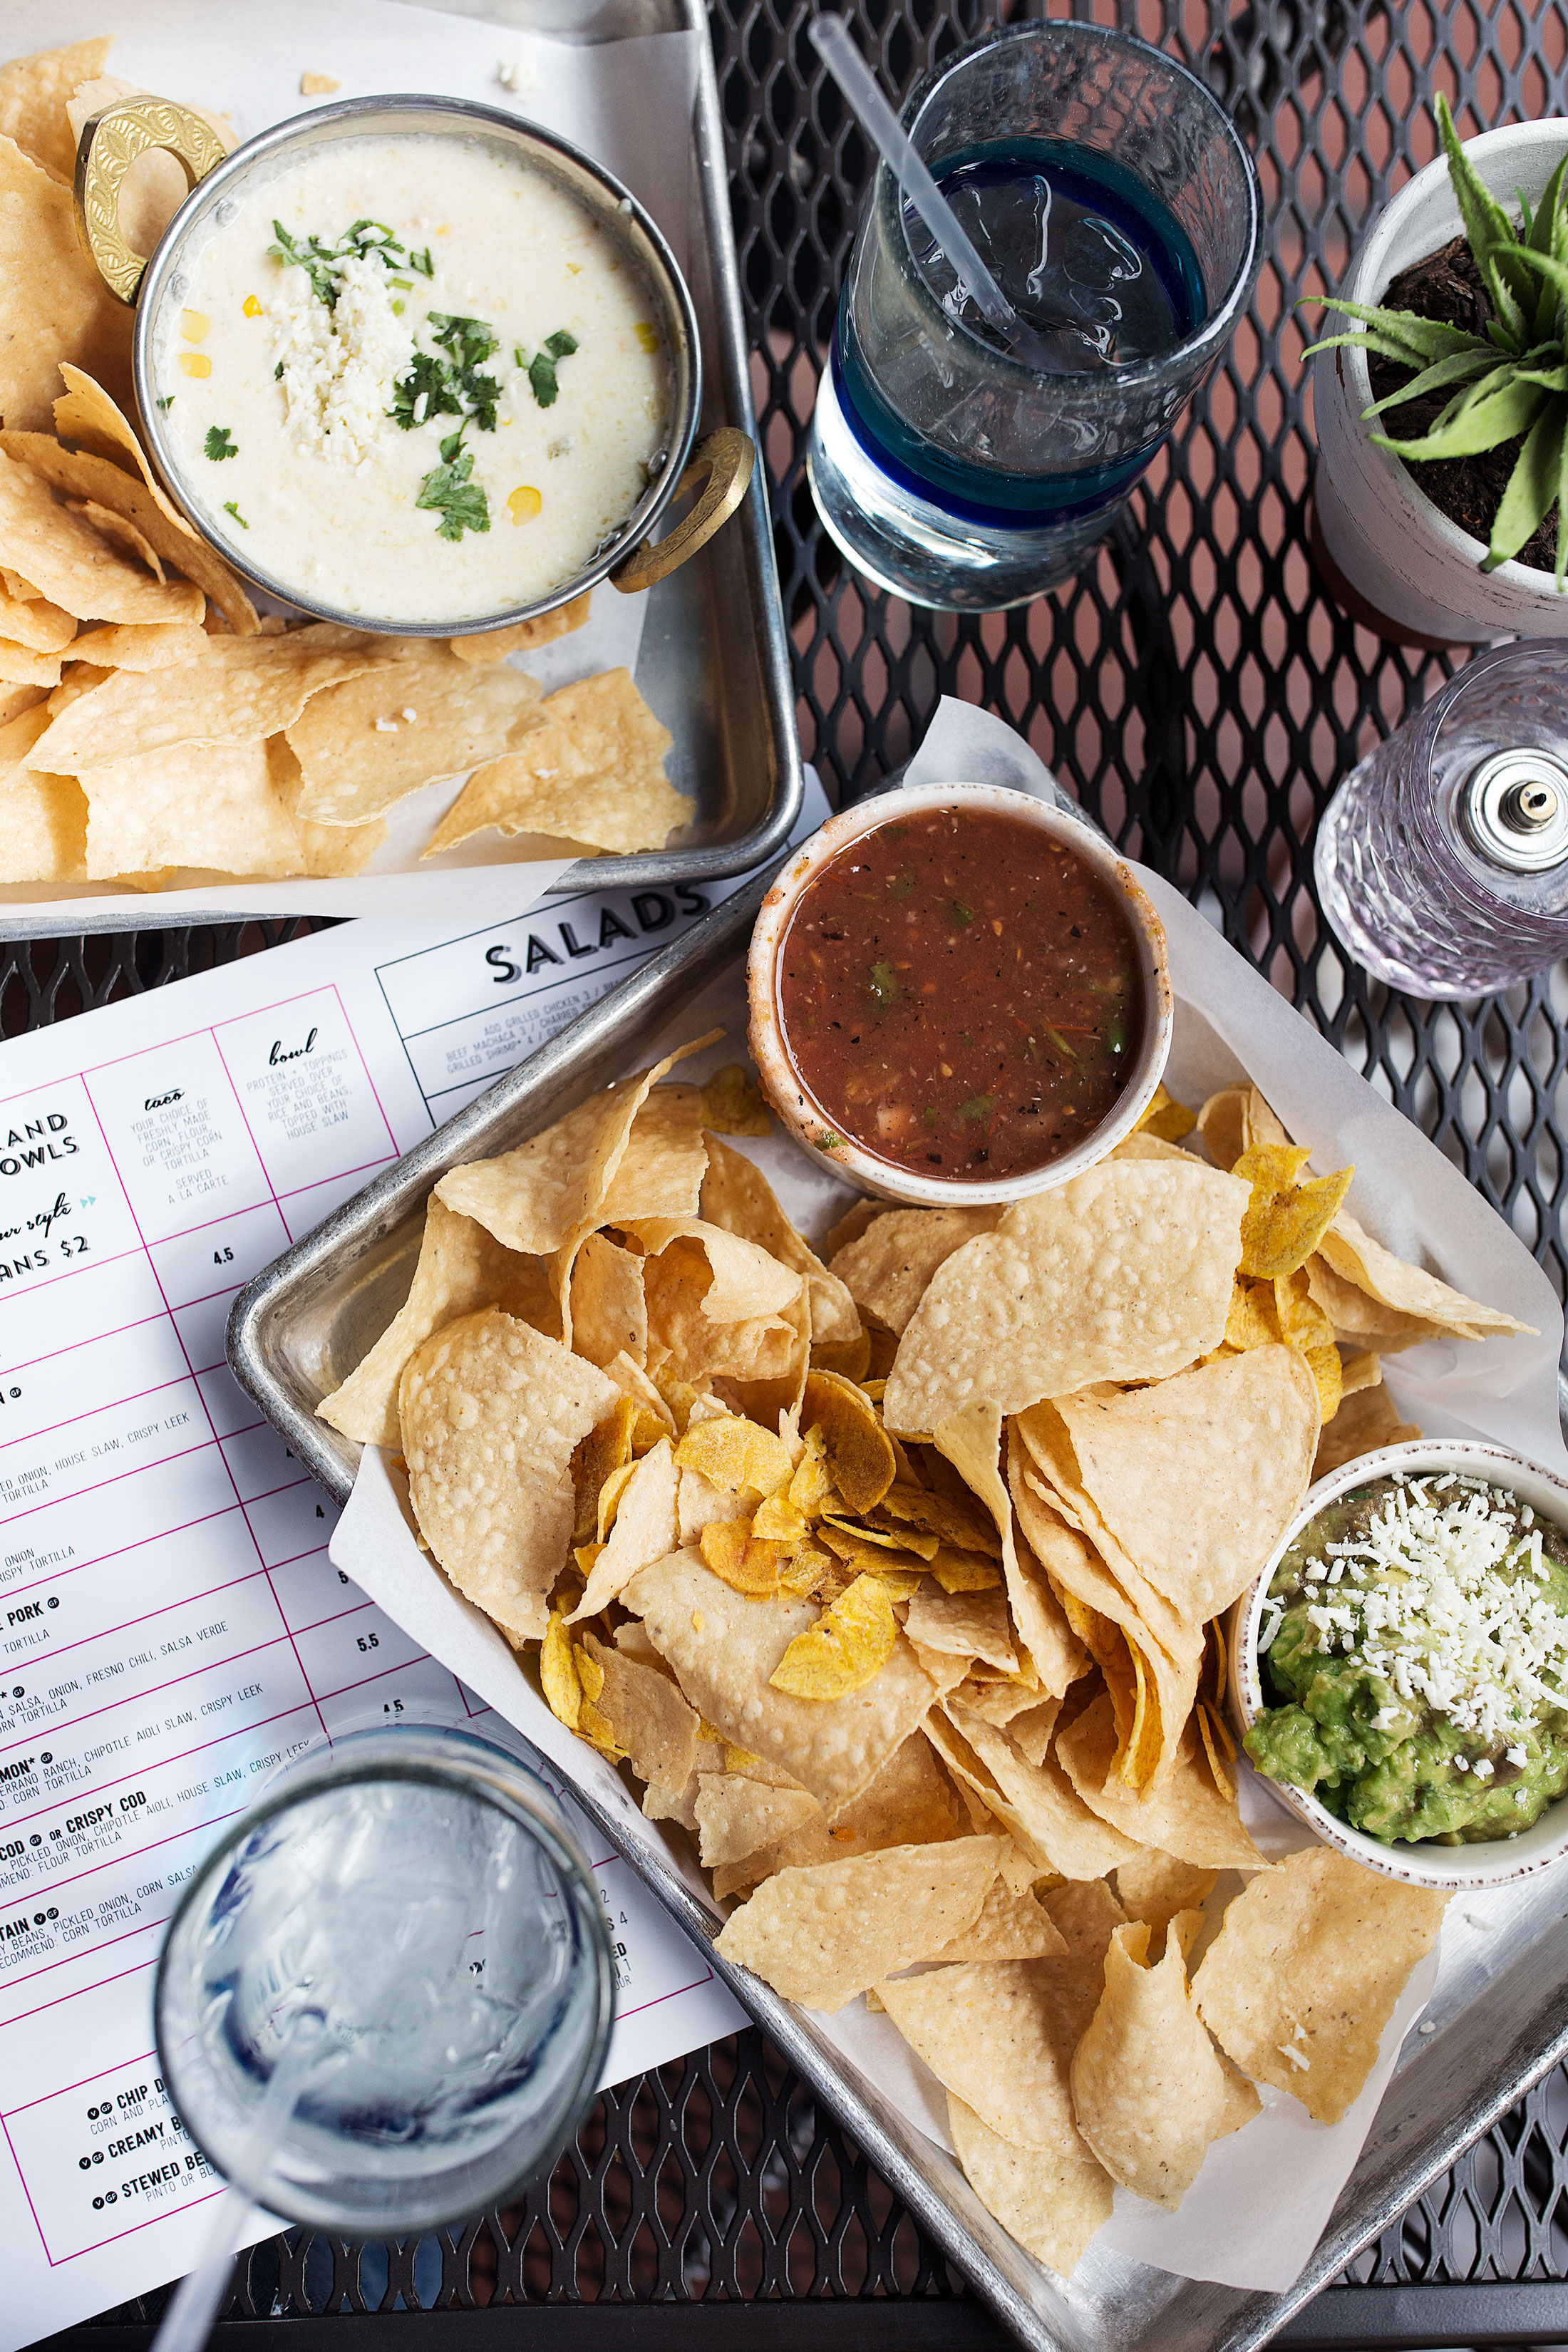 Diego-Pops-Tacos-Scottsdale-AZ-Chips-and-guac.jpg